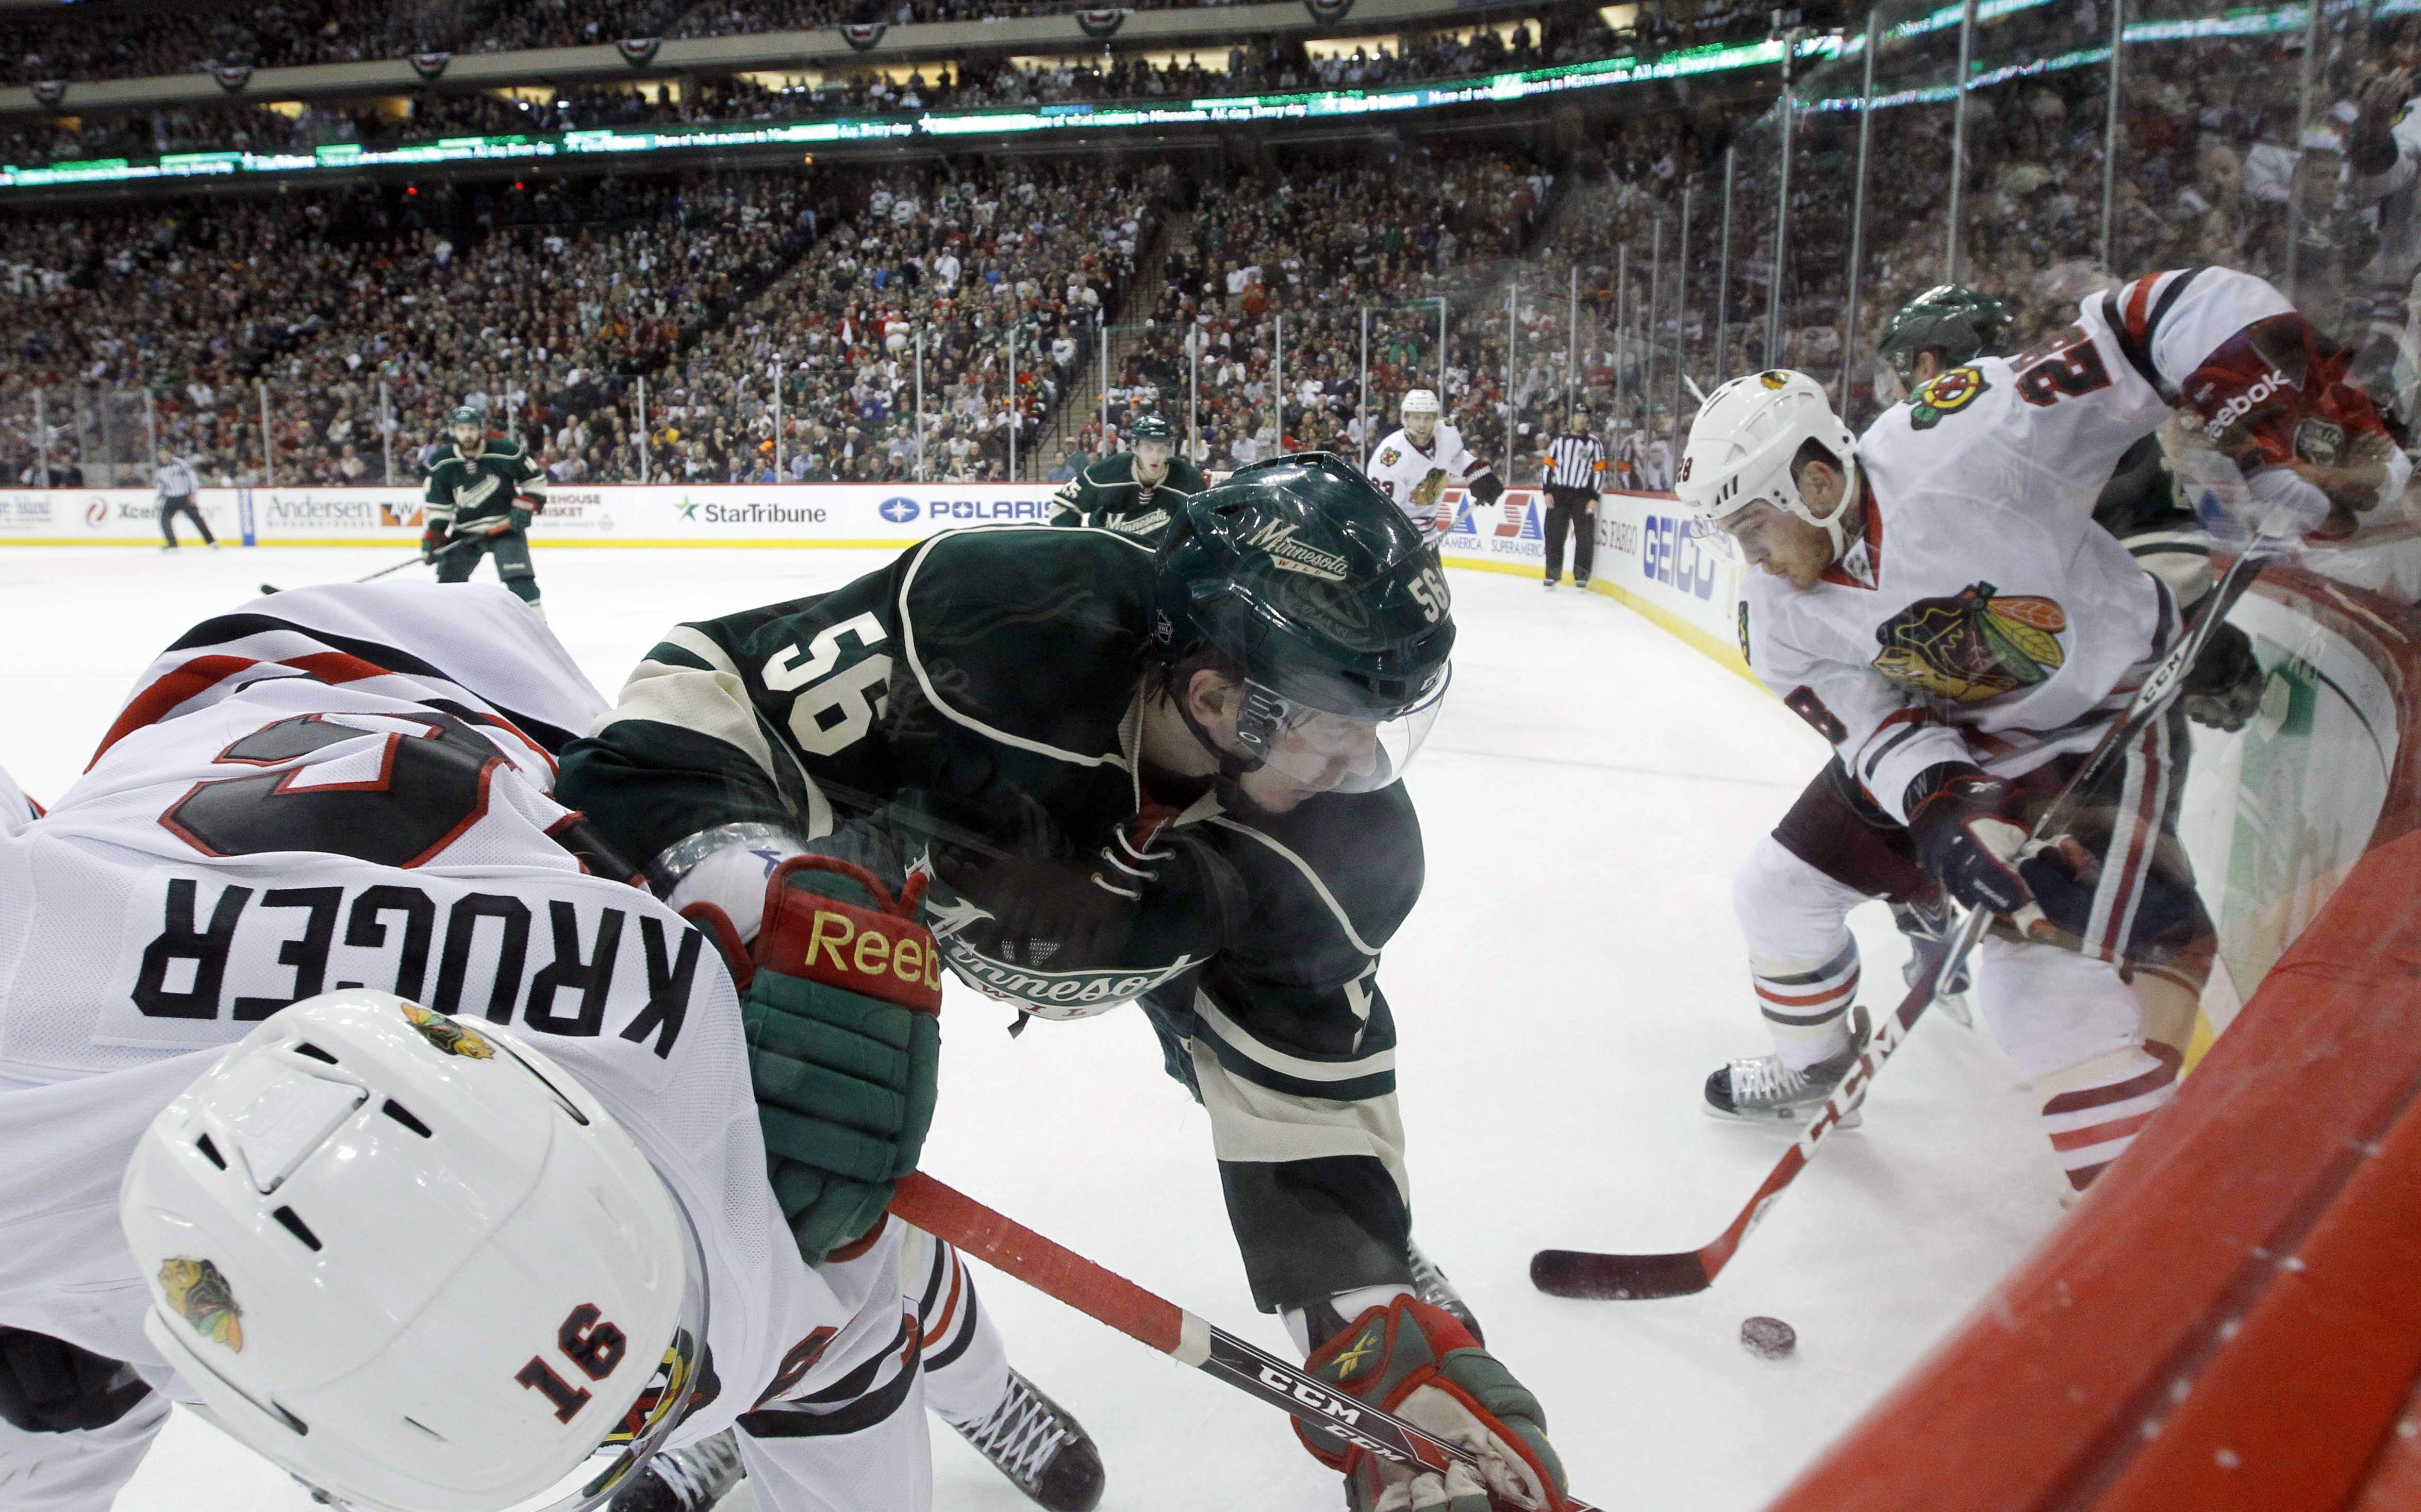 Chicago Blackhawks center Marcus Kruger (16), of Sweden, Minnesota Wild left wing Erik Haula (56), of Finland, and Blackhawks right wing Ben Smith (28) chase the puck during the second period.